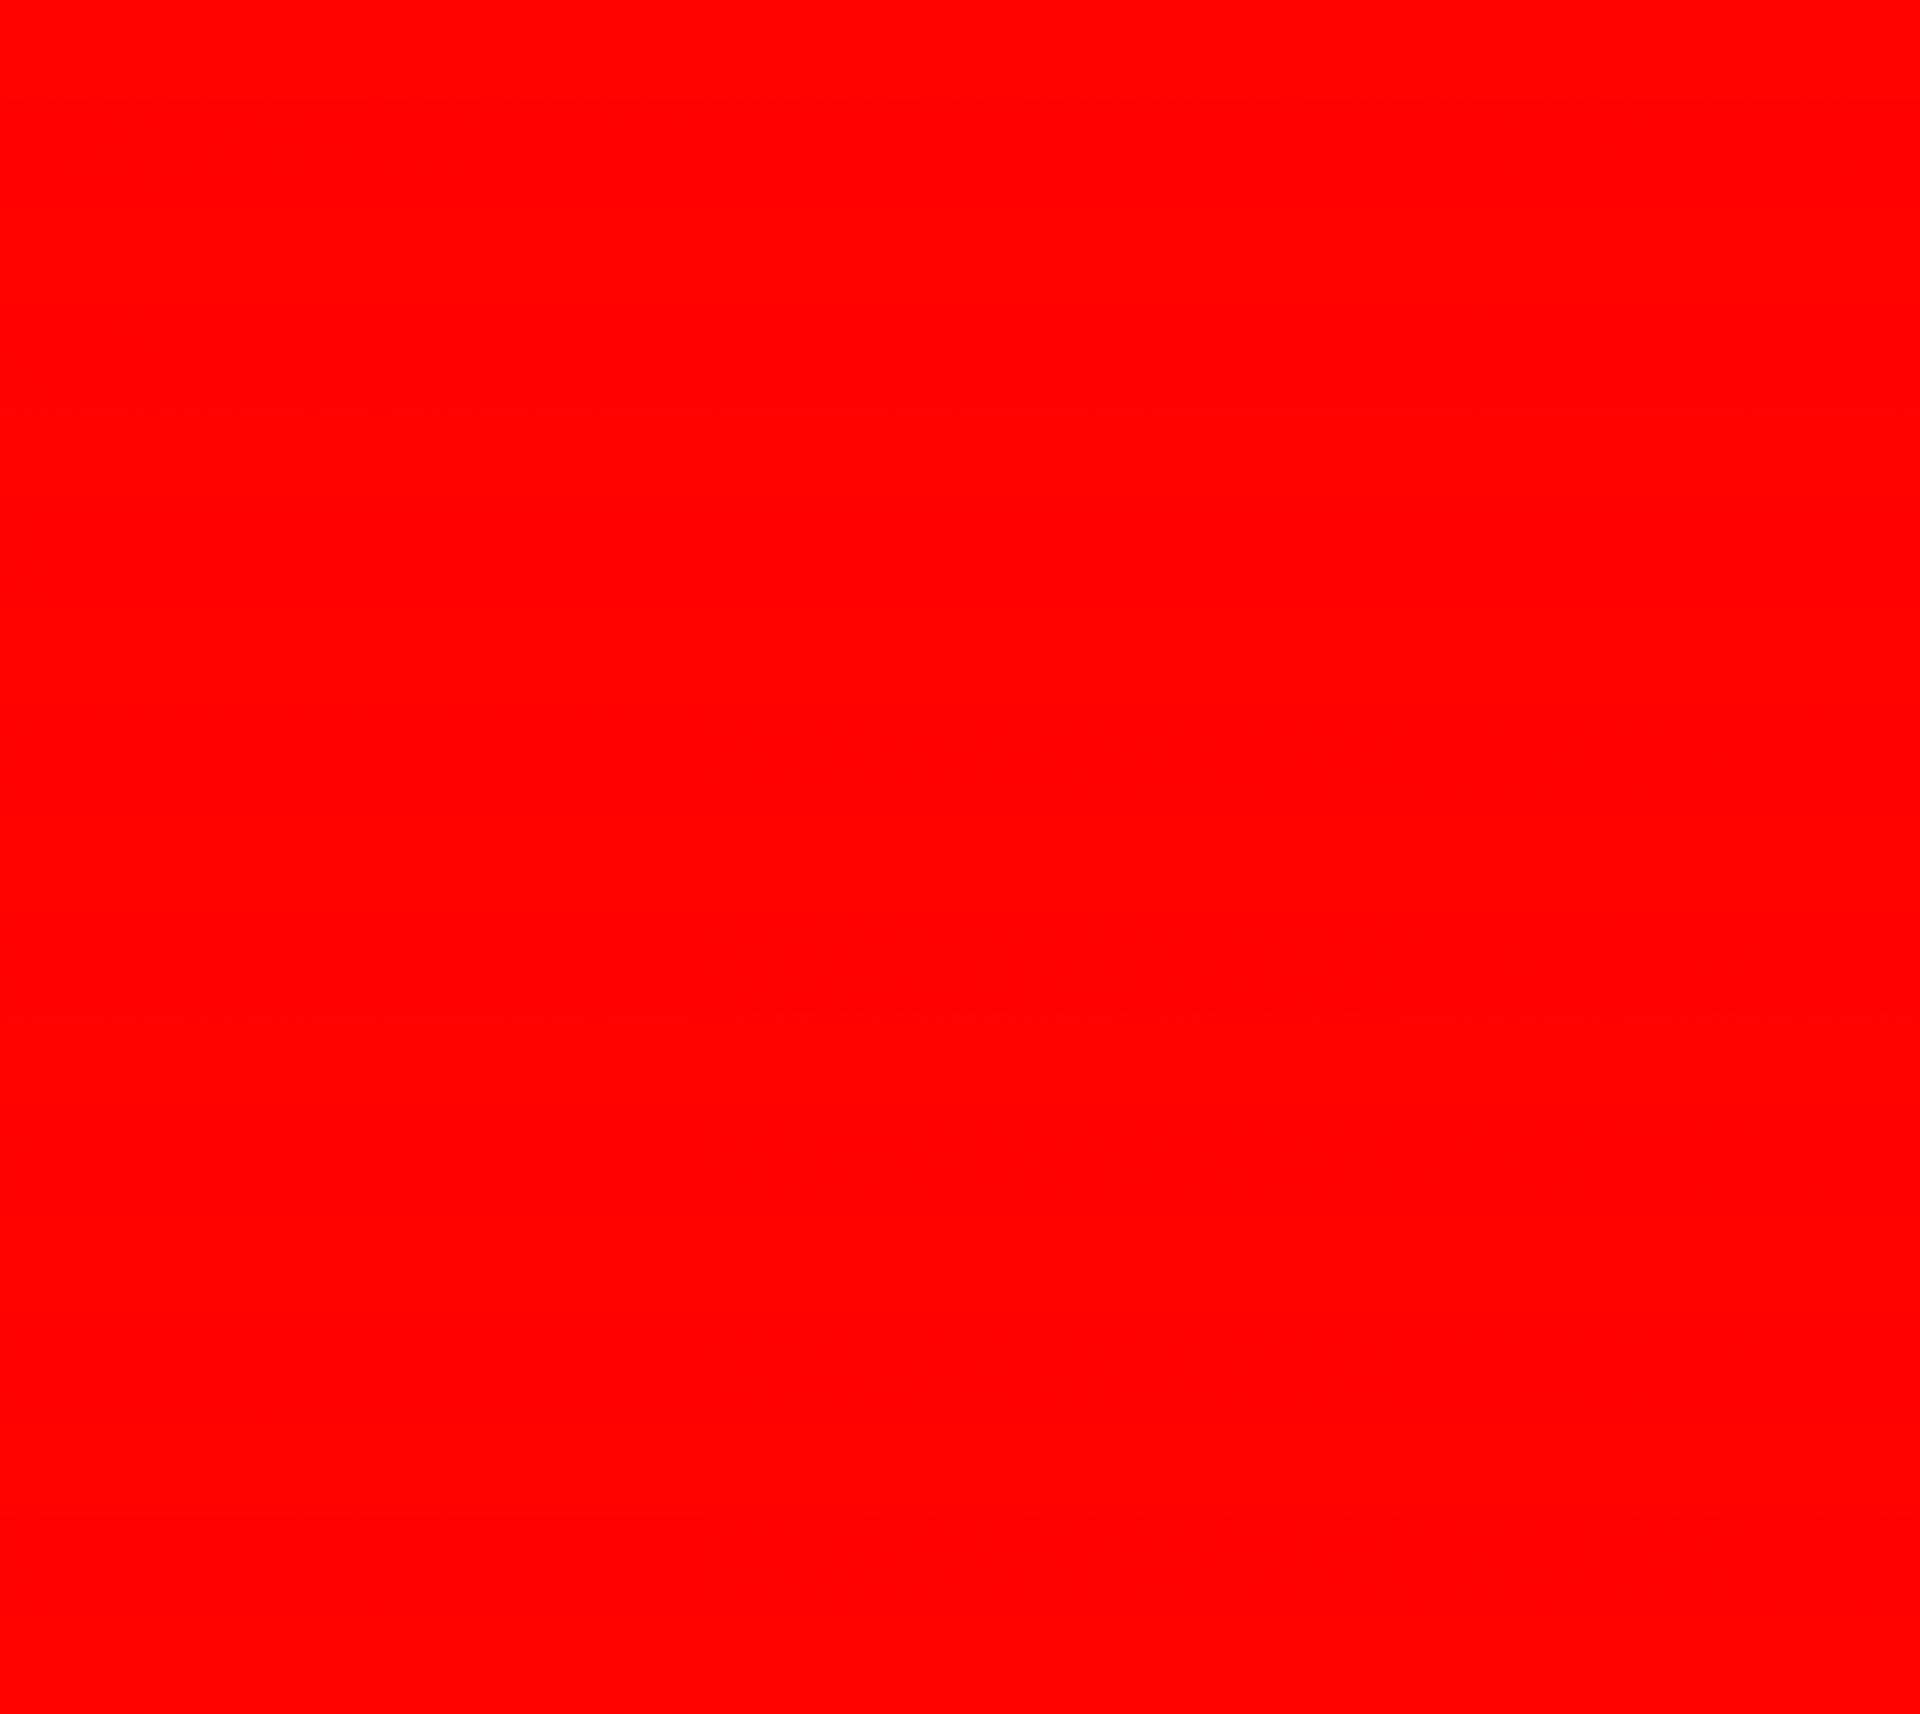 solid-red-background-14148727243CA